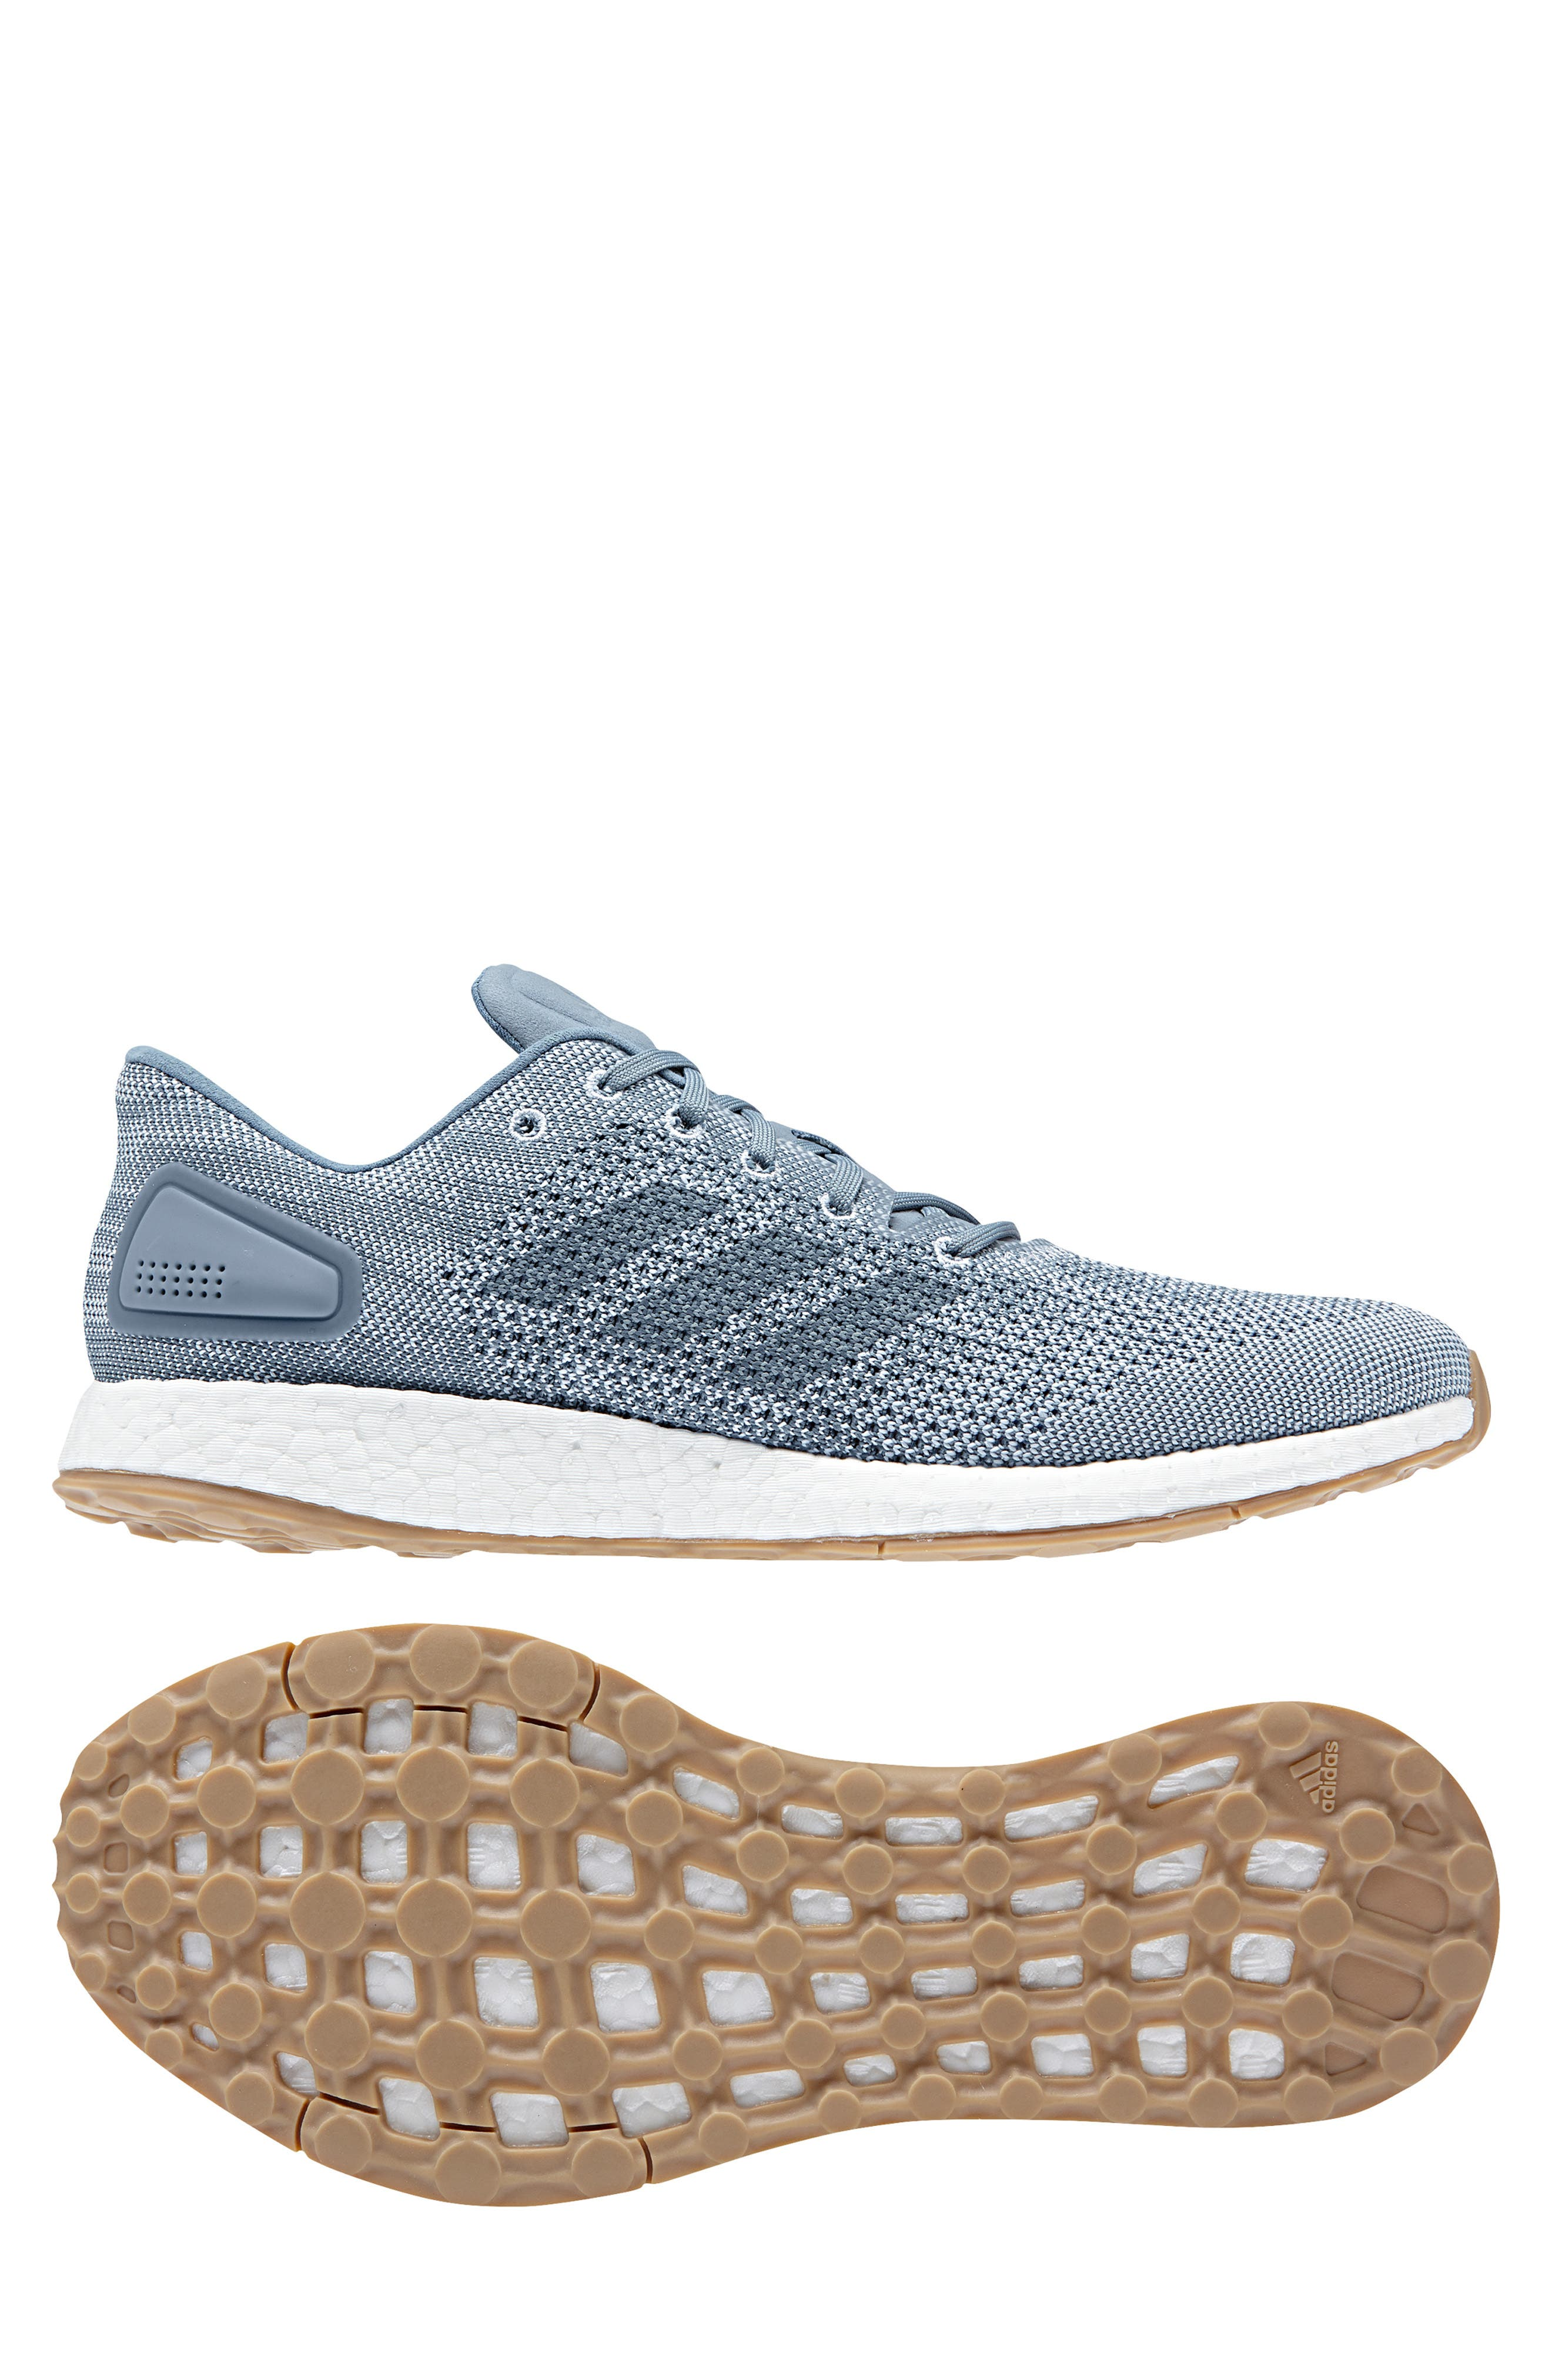 PureBoost DPR Running Shoe,                             Alternate thumbnail 7, color,                             360